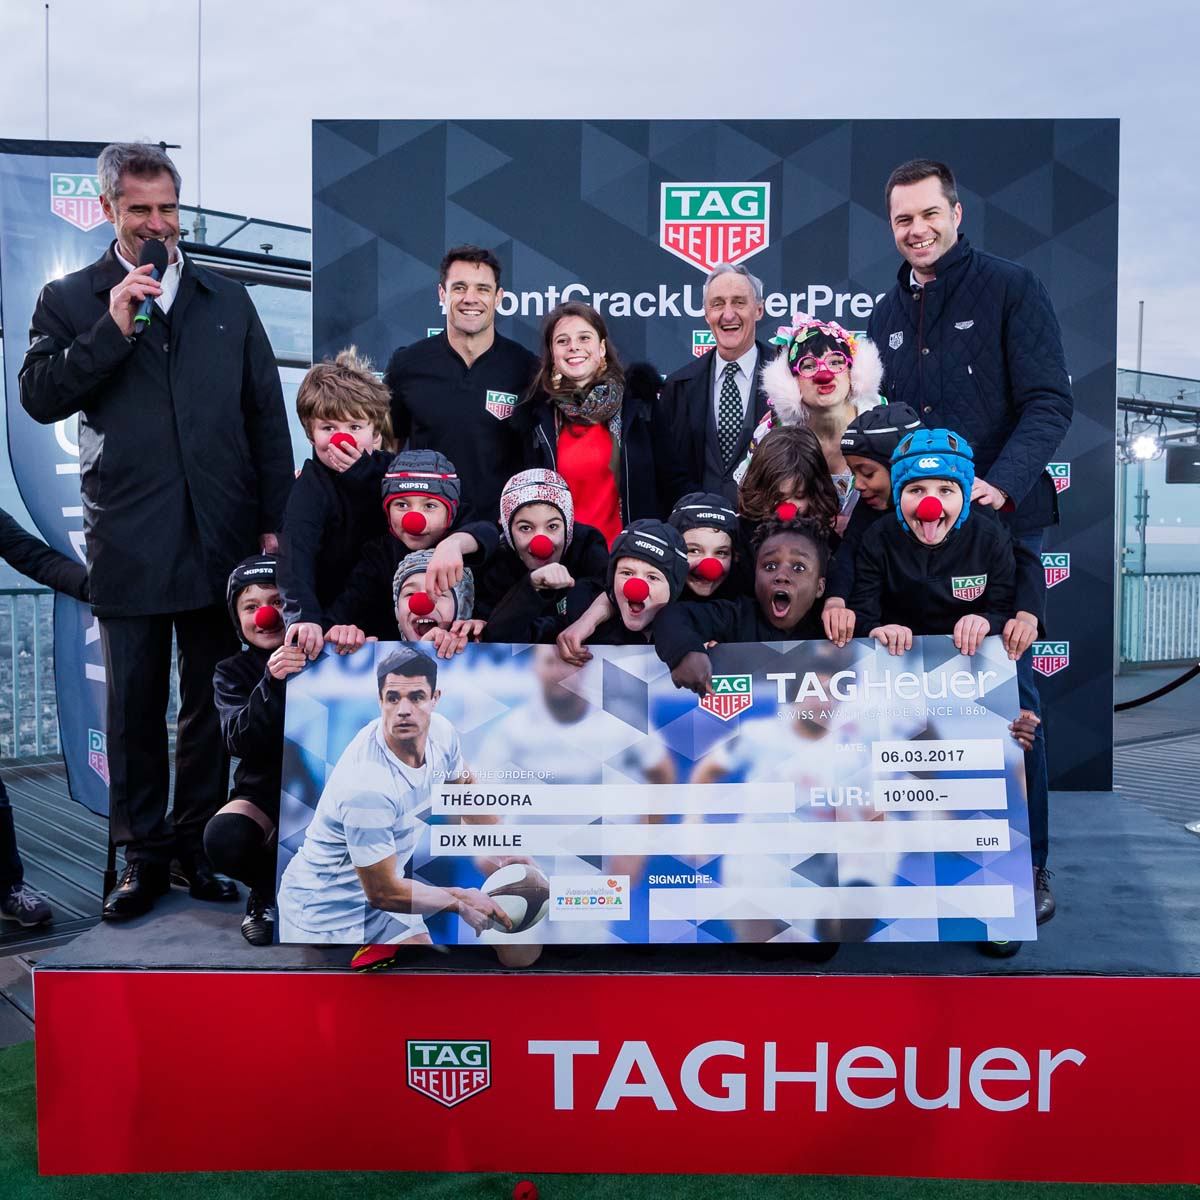 The Watch Quote: Photo - Dan Carter, the famous rugby player, joins the TAG Heuer family